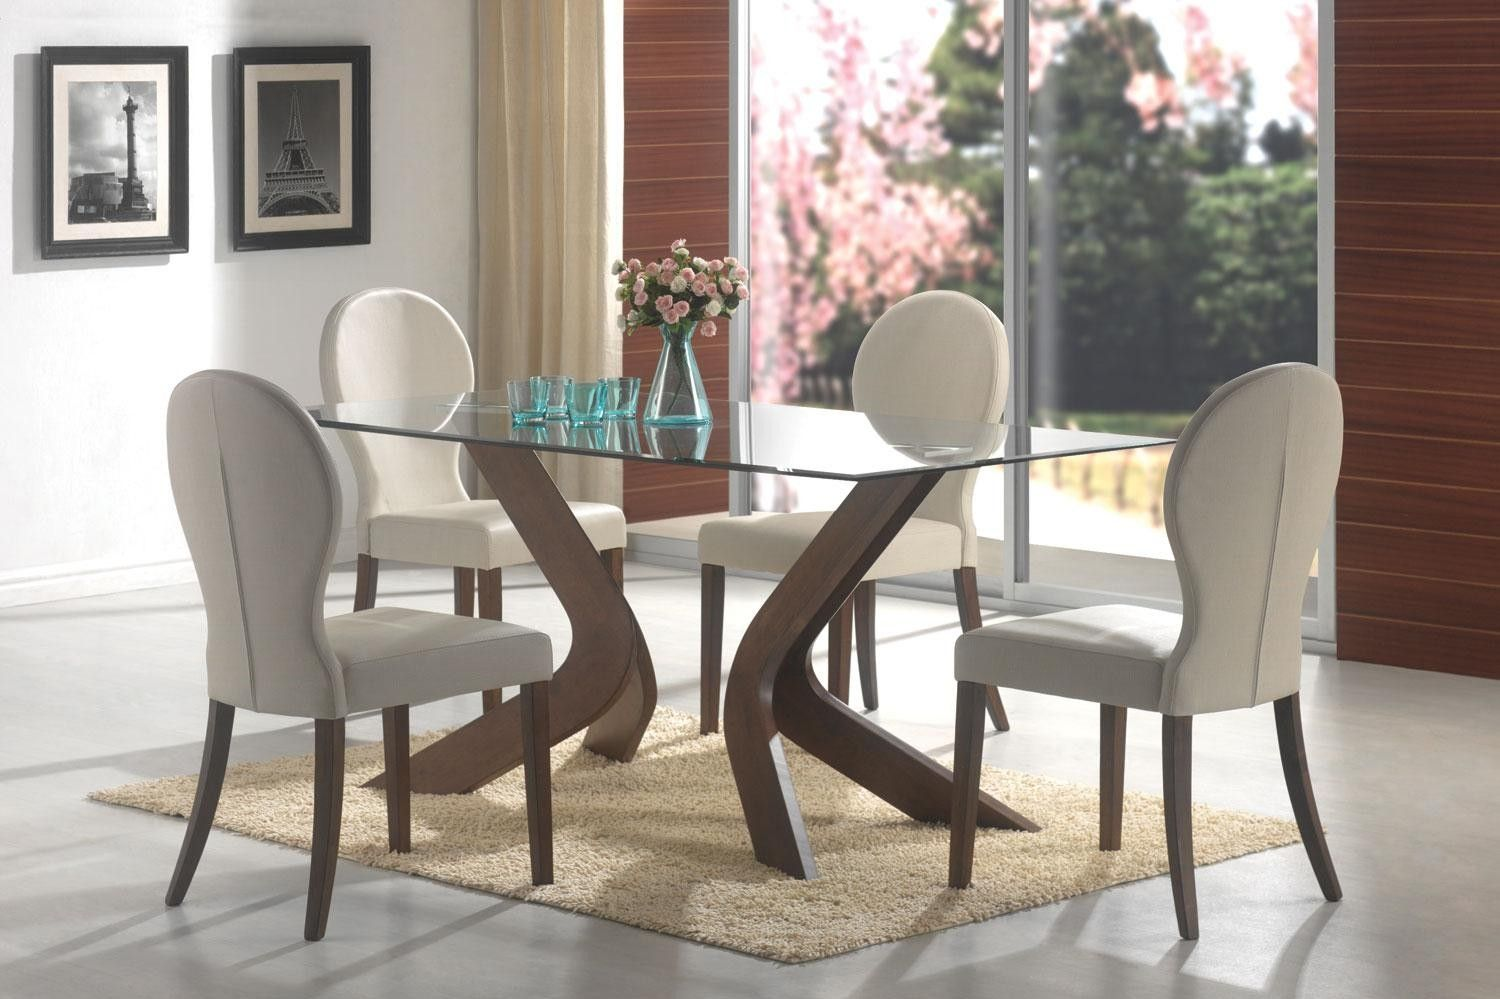 Lowest price online on all coaster san vicente glass top rectangular dining table in walnut 120361